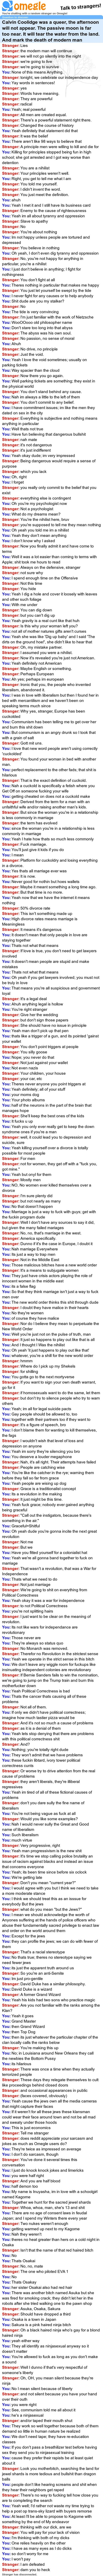 A Gratuitously Long Troll On Omegle. I was wasting my life frustrated with the poor questions prompts on Omegle so I took this for a ride down the path of nihil